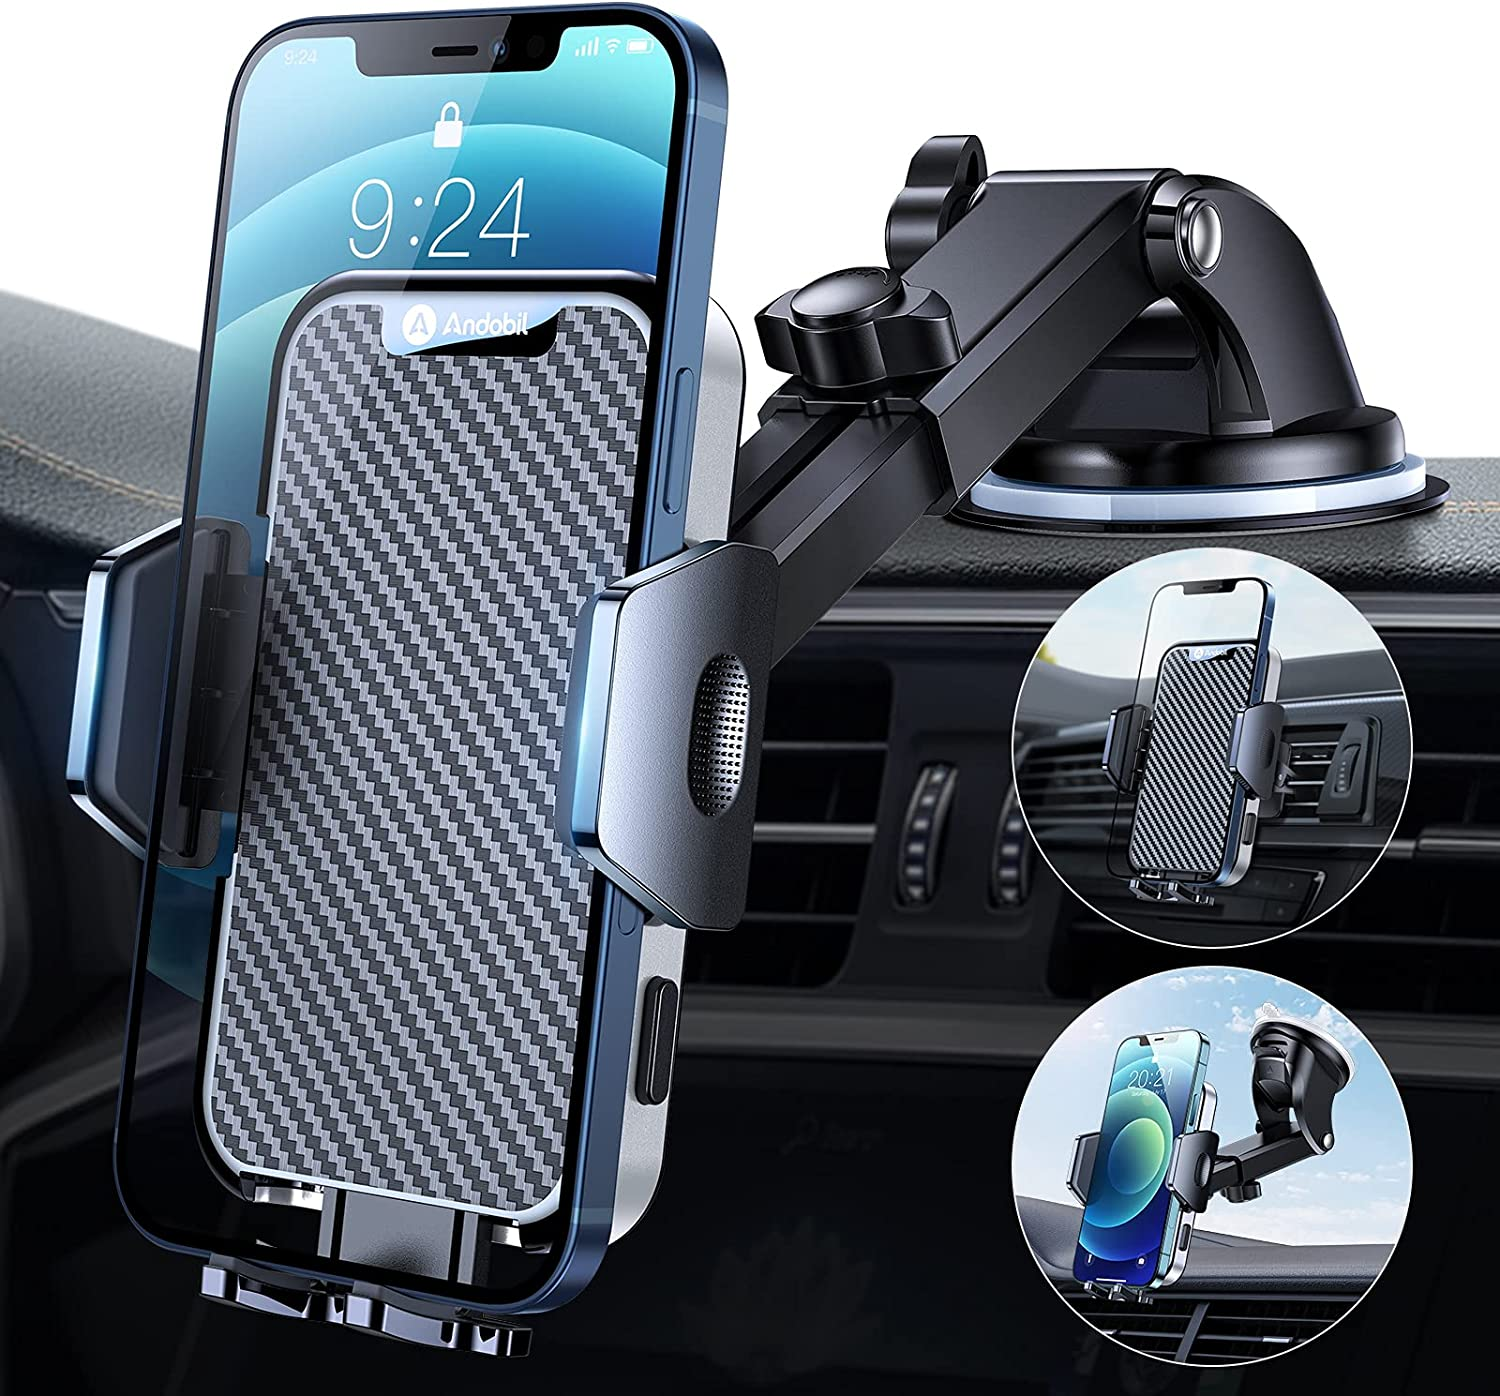 andobil Cell Phone Holder for Car [Thick Case & Heavy Phone Friendly ] 3-in-1 Car Phone Holder Mount for Dashboard Air Vent Windshield Compatible with iPhone 12 Pro max 11 Samsung S21 All Phones